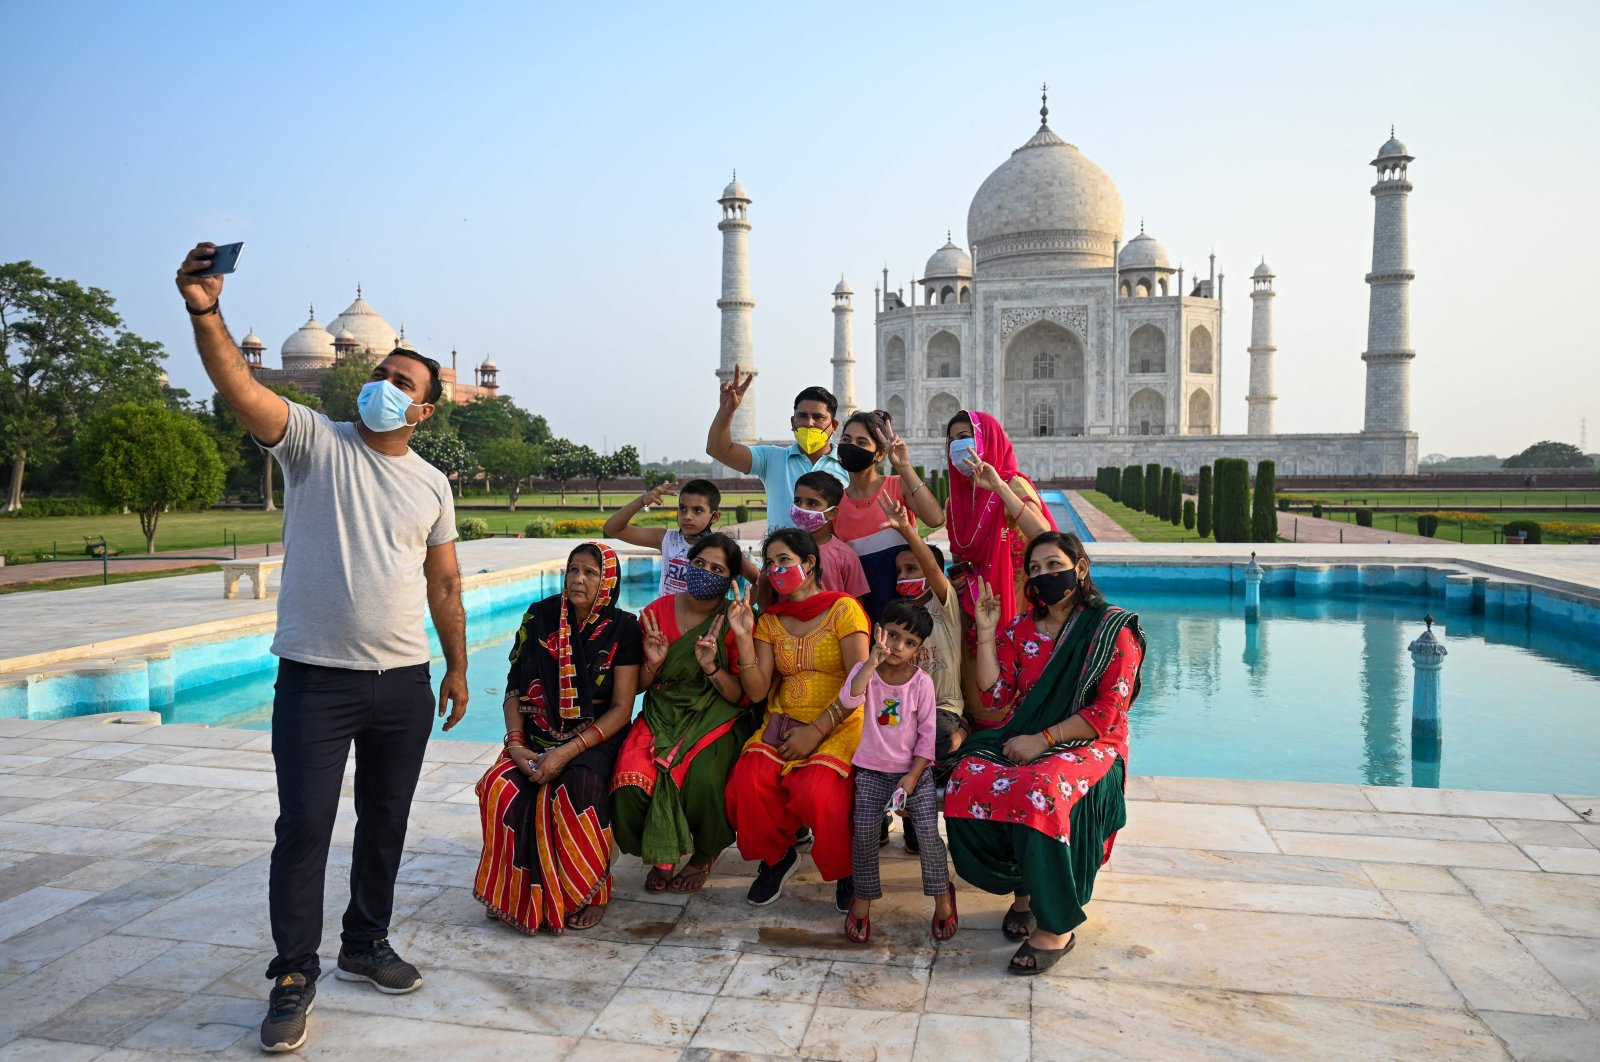 A group of tourists takes a photo at the Taj Mahal after it reopened to visitors following authorities easing coronavirus restrictions in Agra, India, June 16, 2021. (AFP Photo)